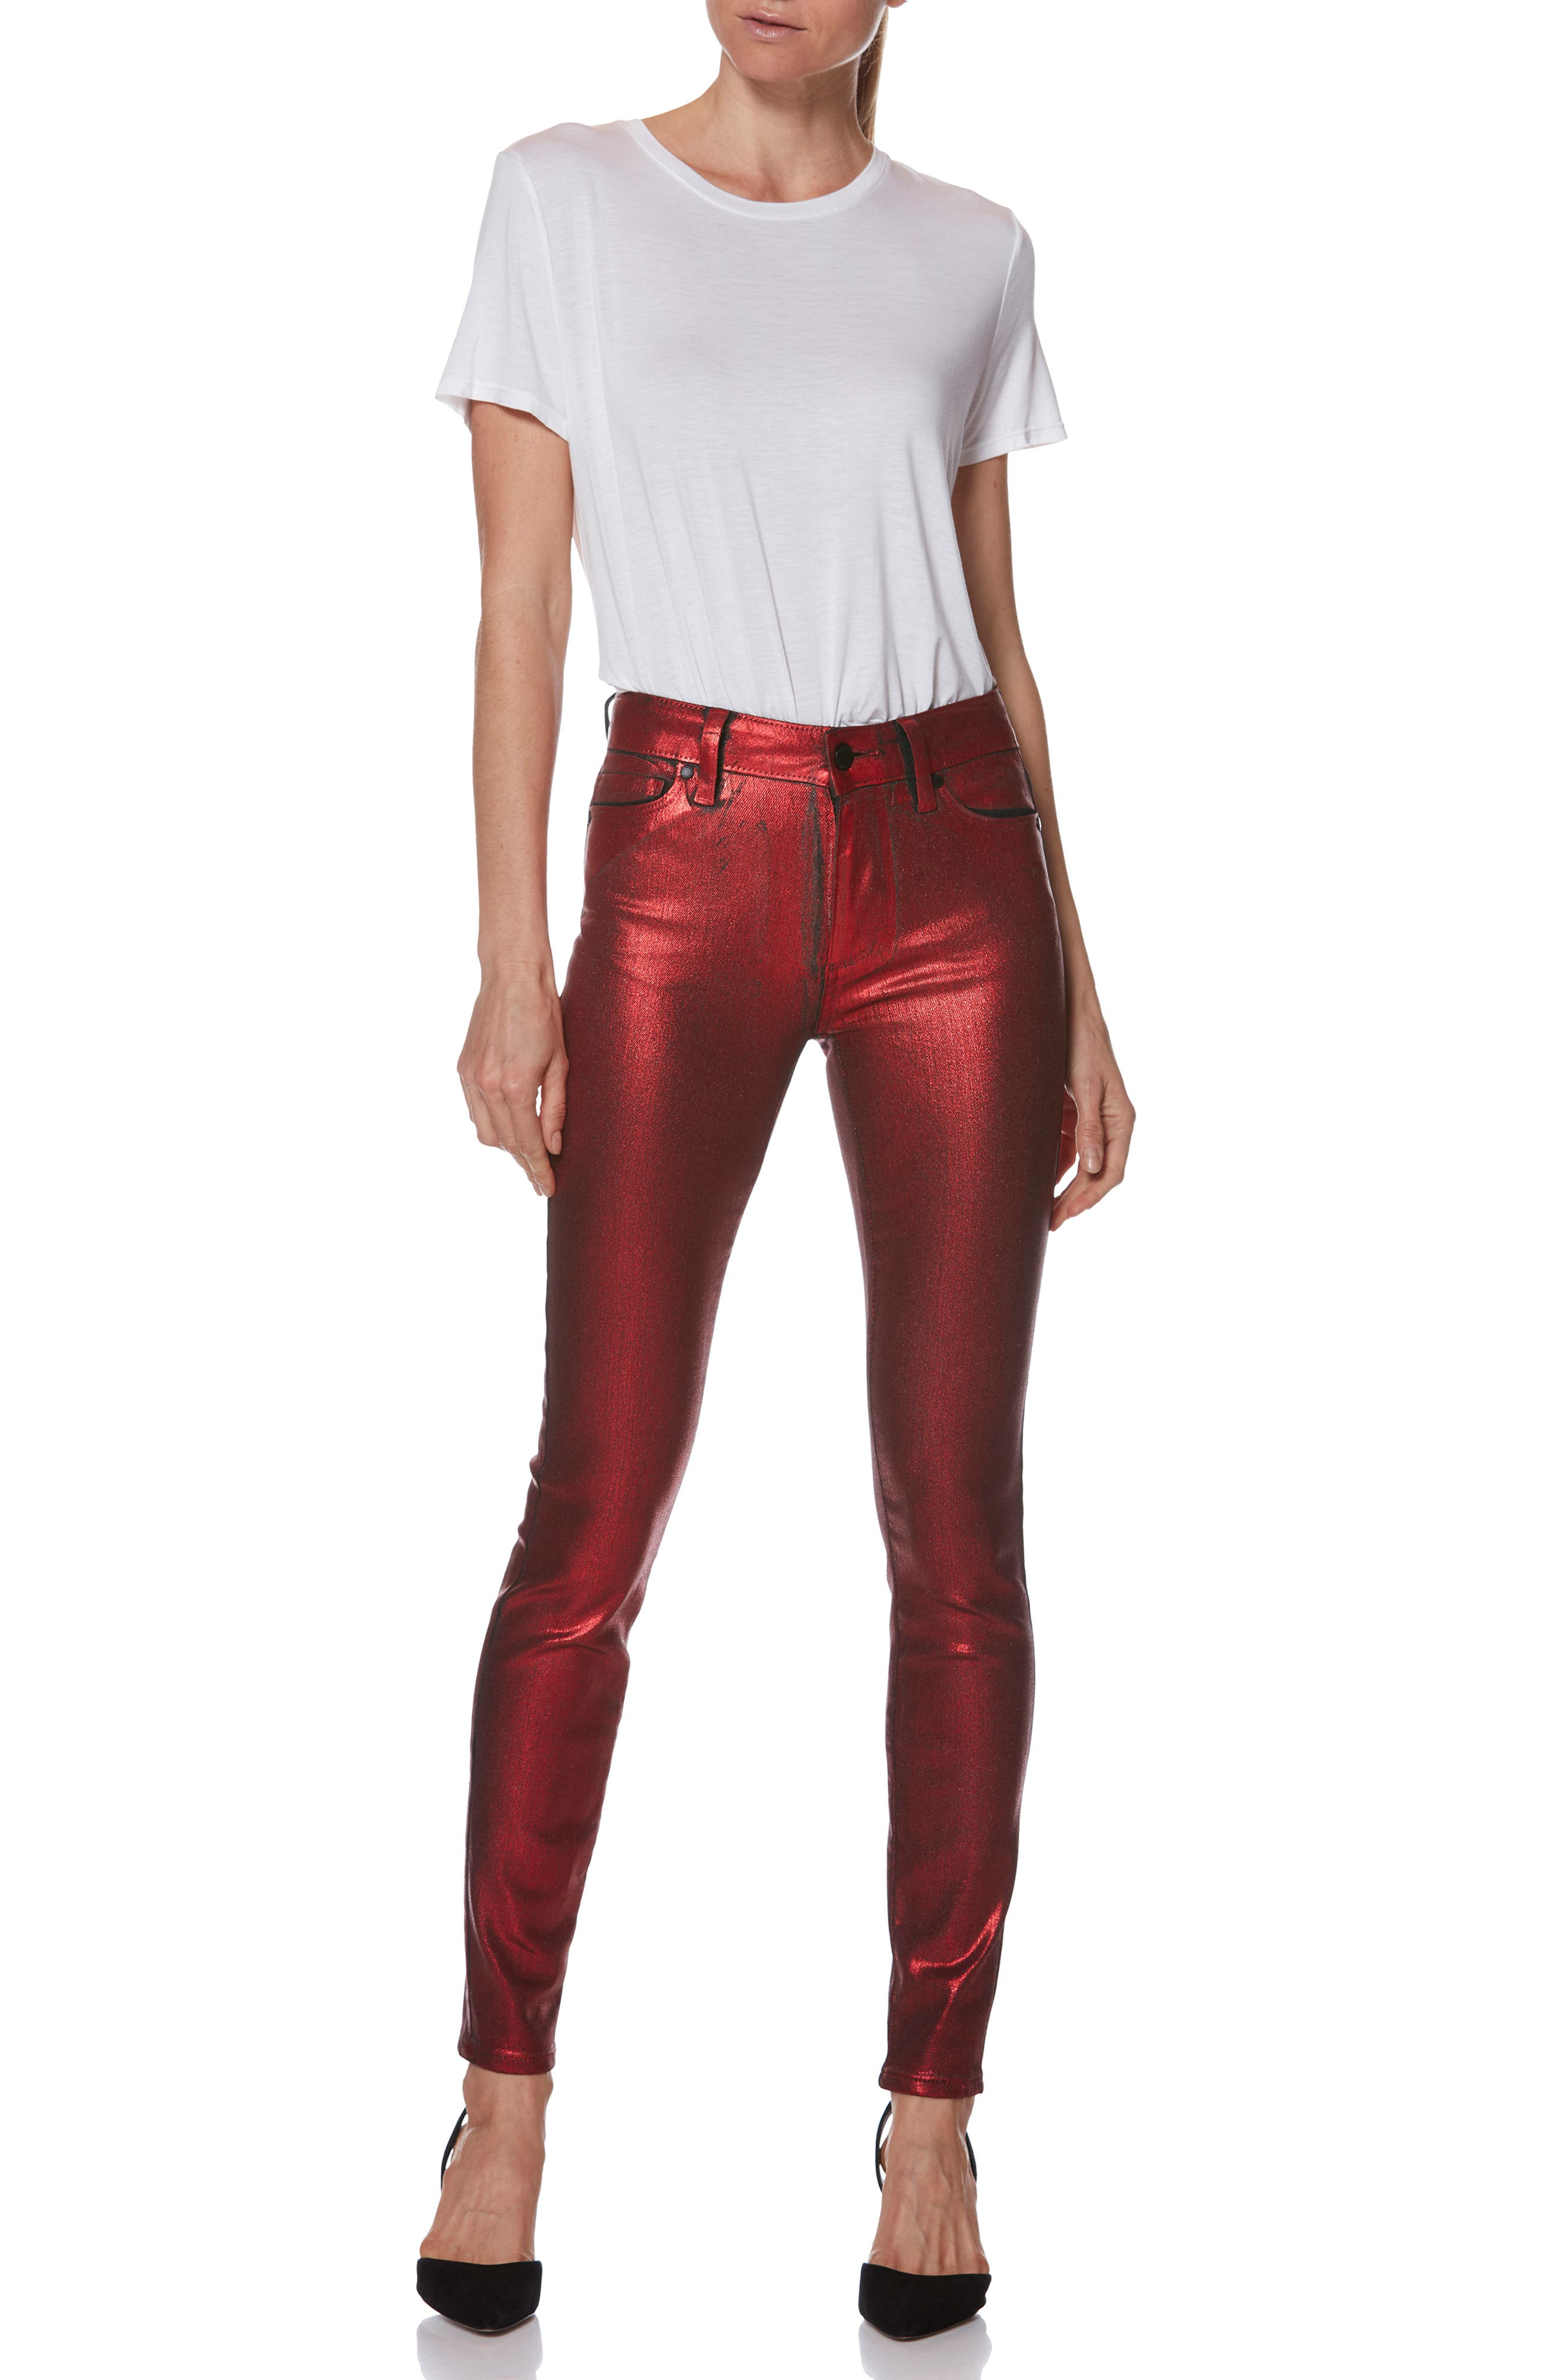 Hoxton High Waist Ultra Skinny Jeans,                             Alternate thumbnail 5, color,                             RED GALAXY COATING